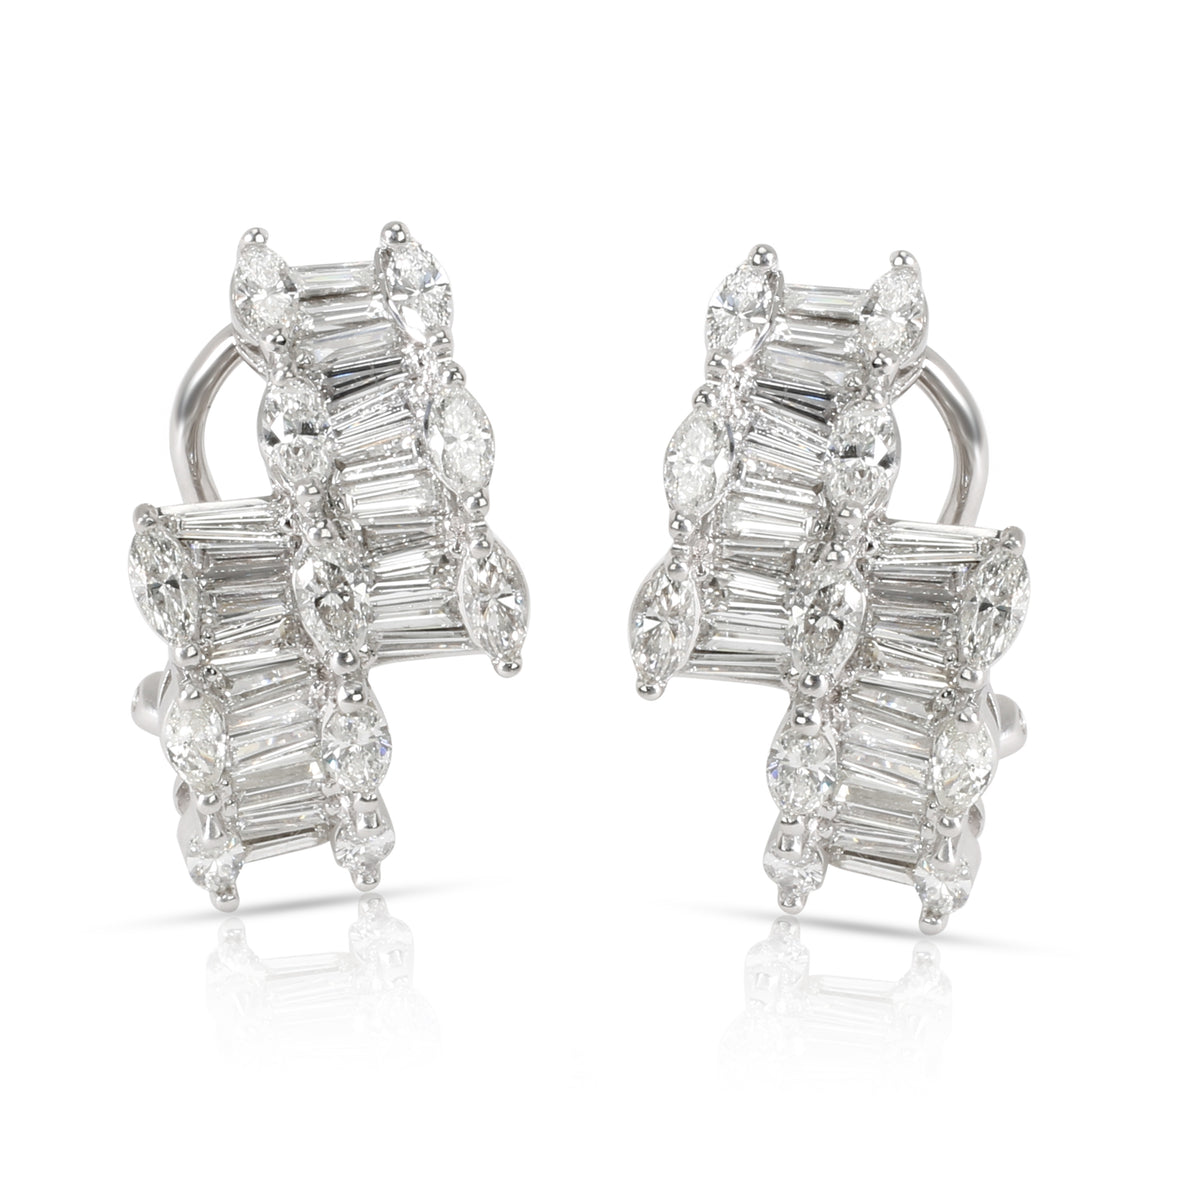 Marquise & Baguette Diamond Fashion Earrings 10K White gold 3.30 ctw